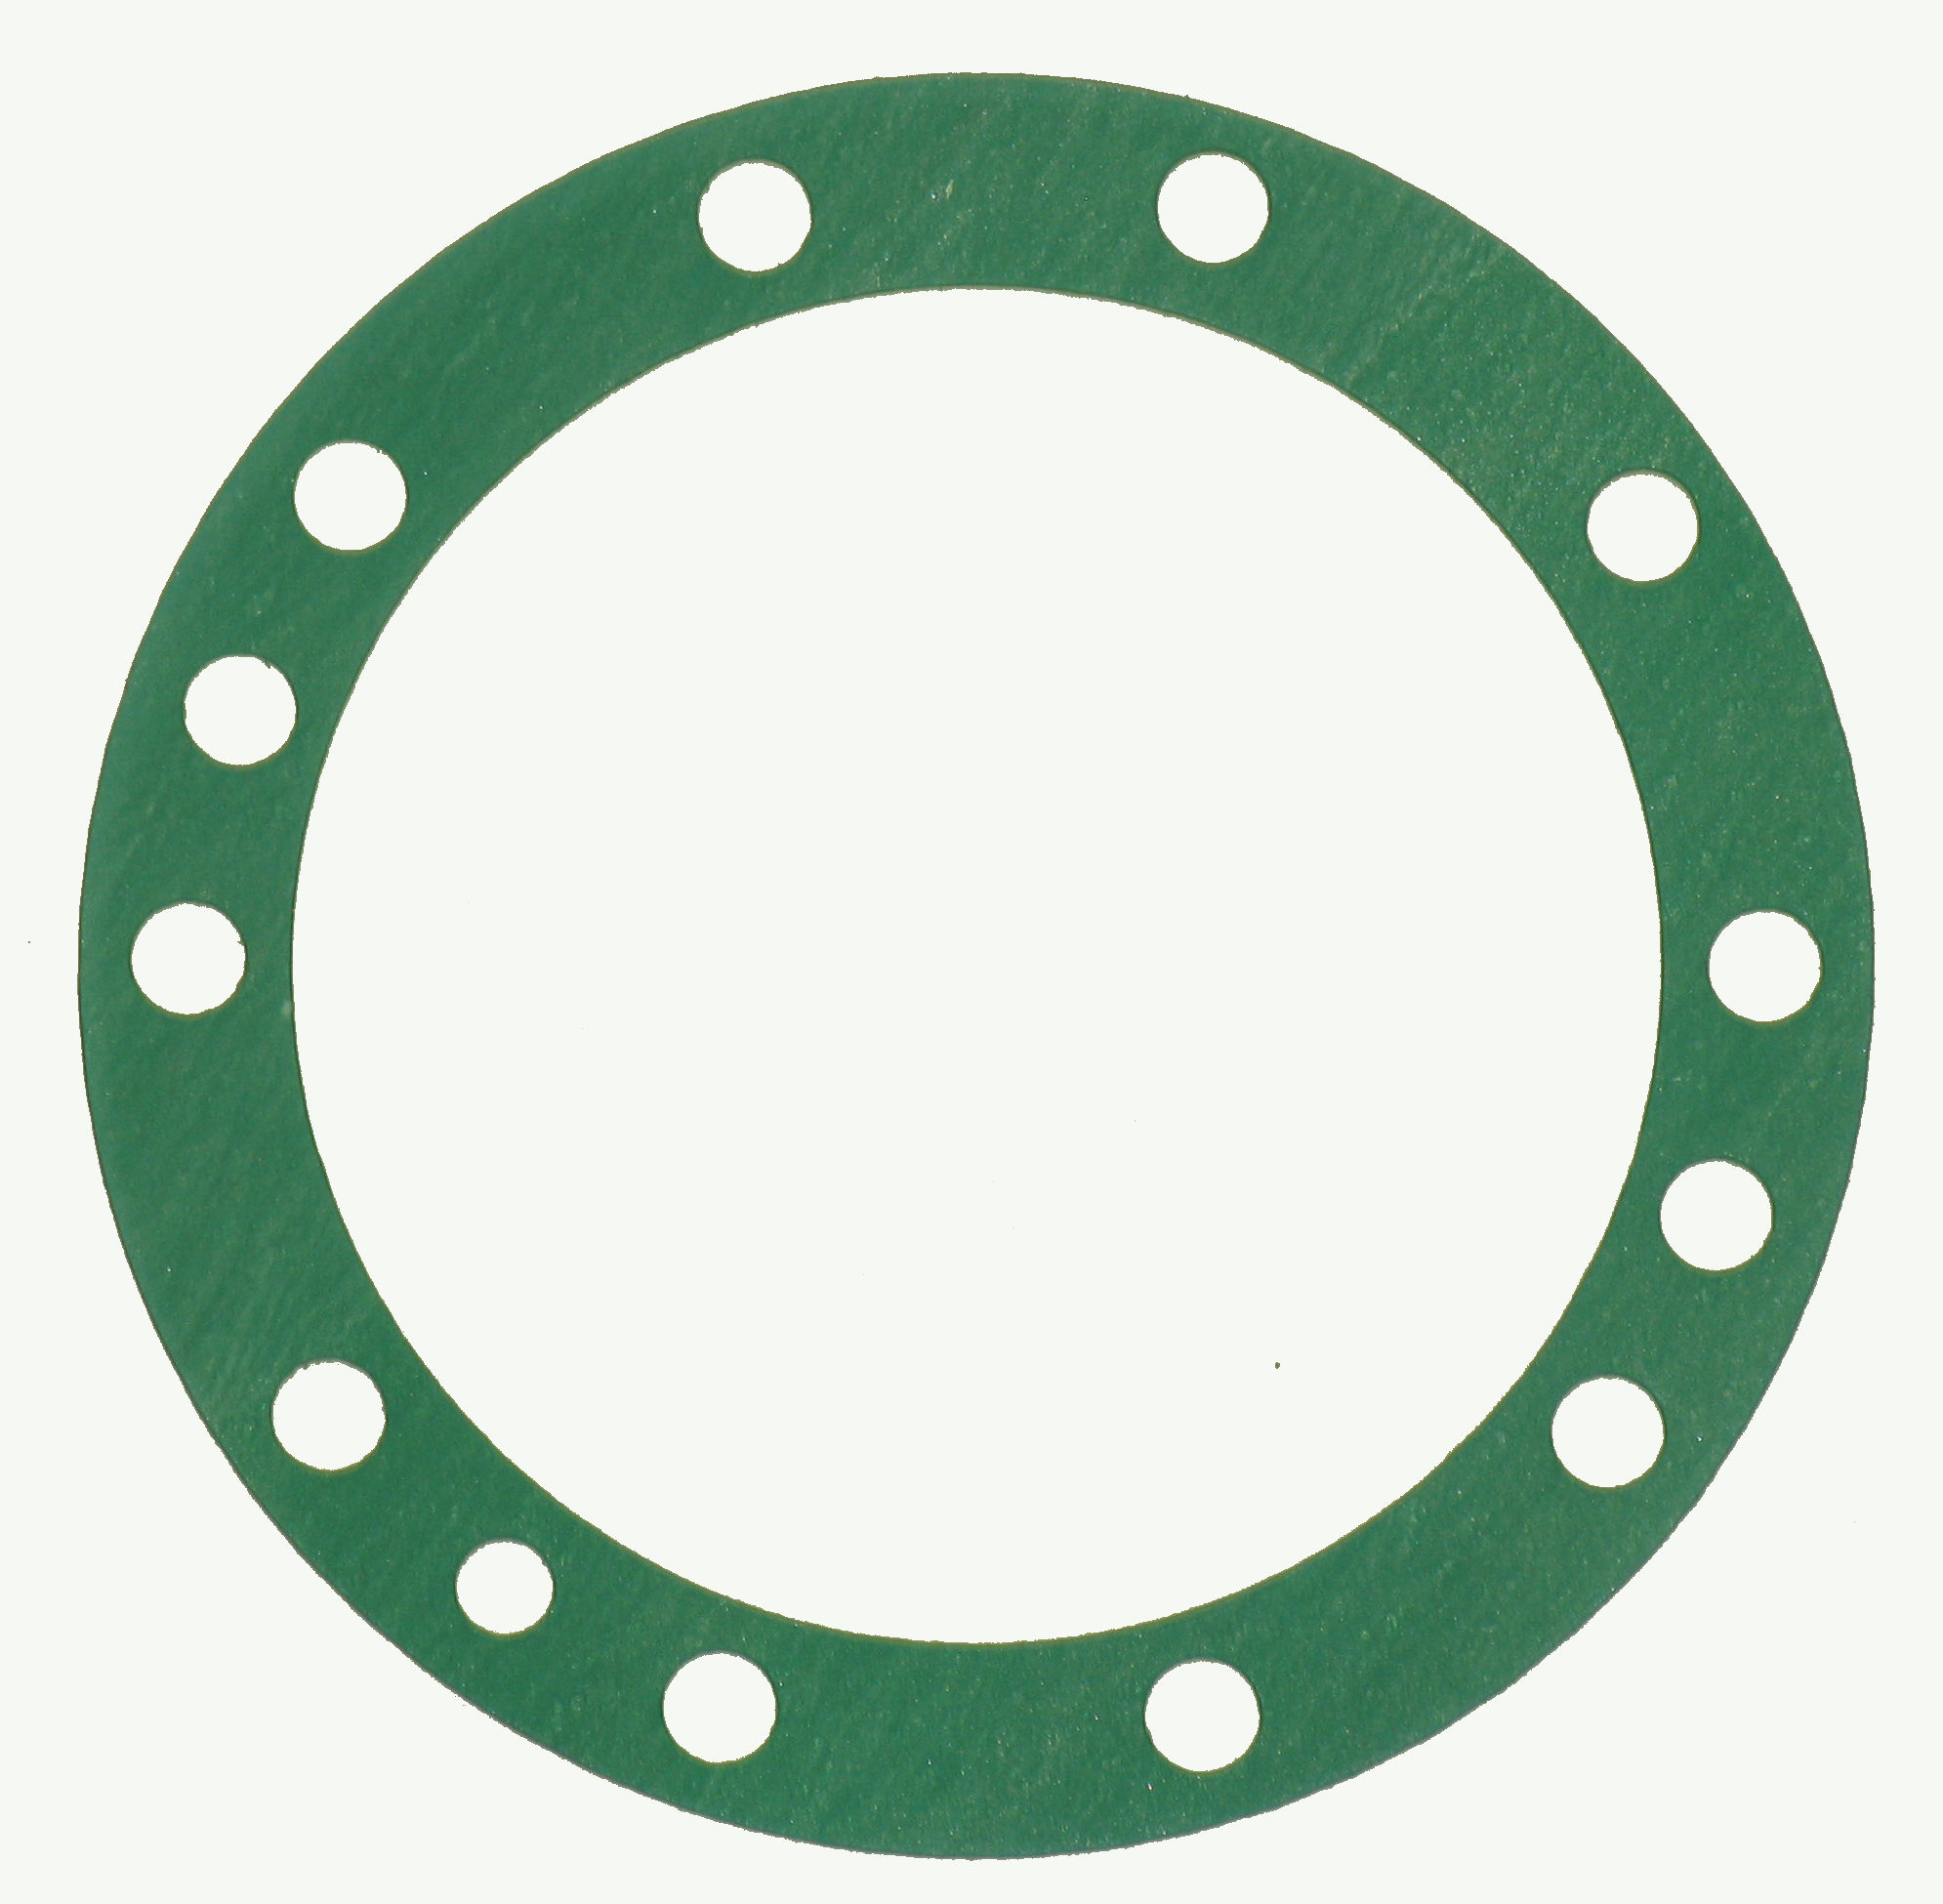 GKT-6375 Gasket; R/N GKT-910 (Made in the USA)